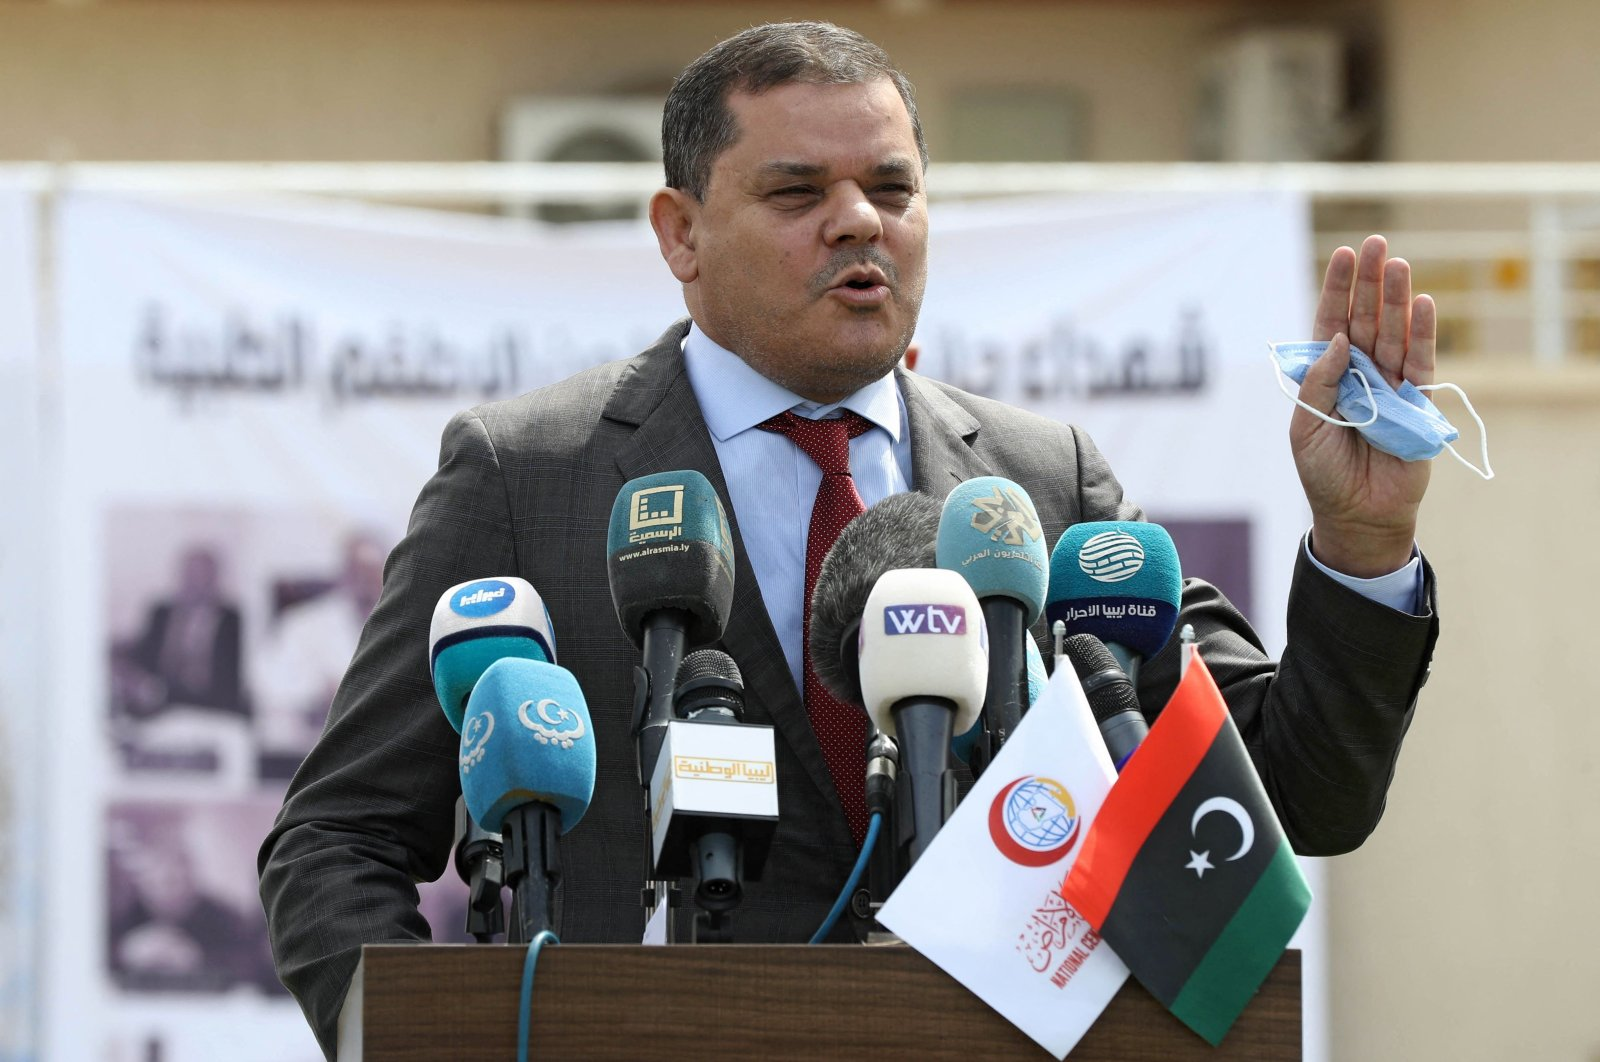 Libyan Prime Minister Abdelhamid Dbeibah delivers a speech outside the Centre for Disease Control in the capital Tripoli, Libya, April 10, 2021. (Mahmud TURKIA / AFP)